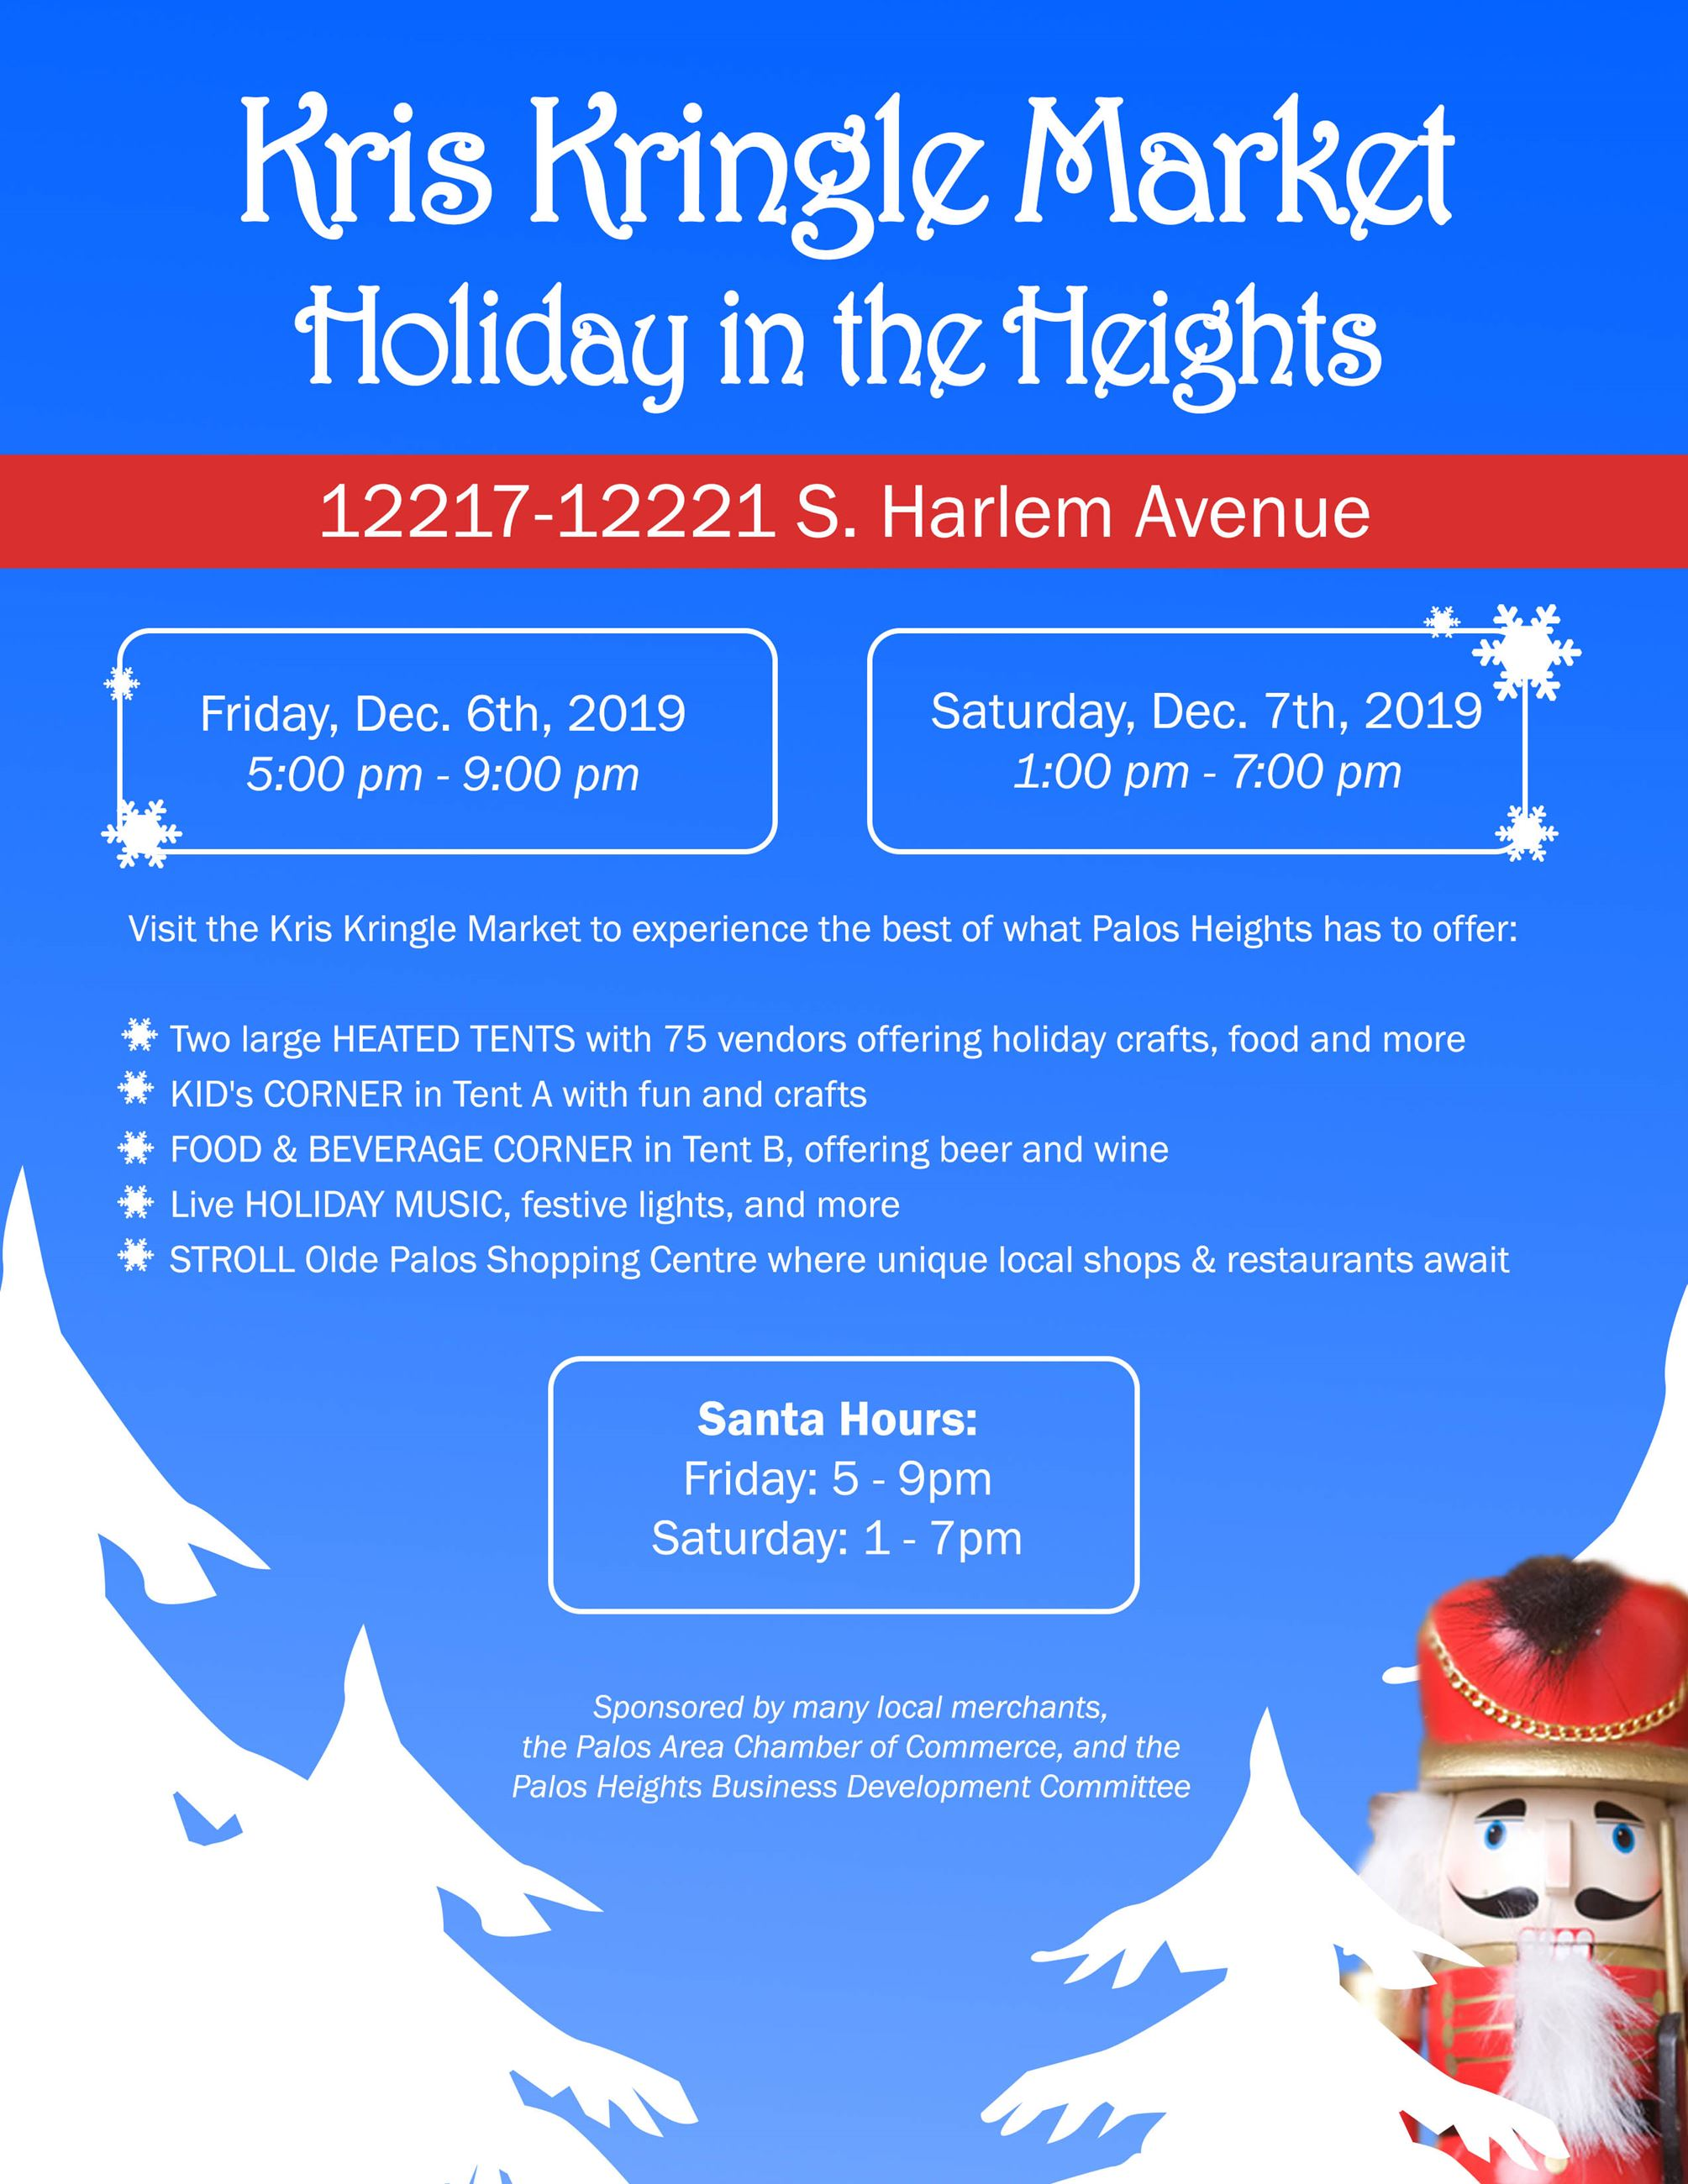 Kris Kringle Market Hours and Information